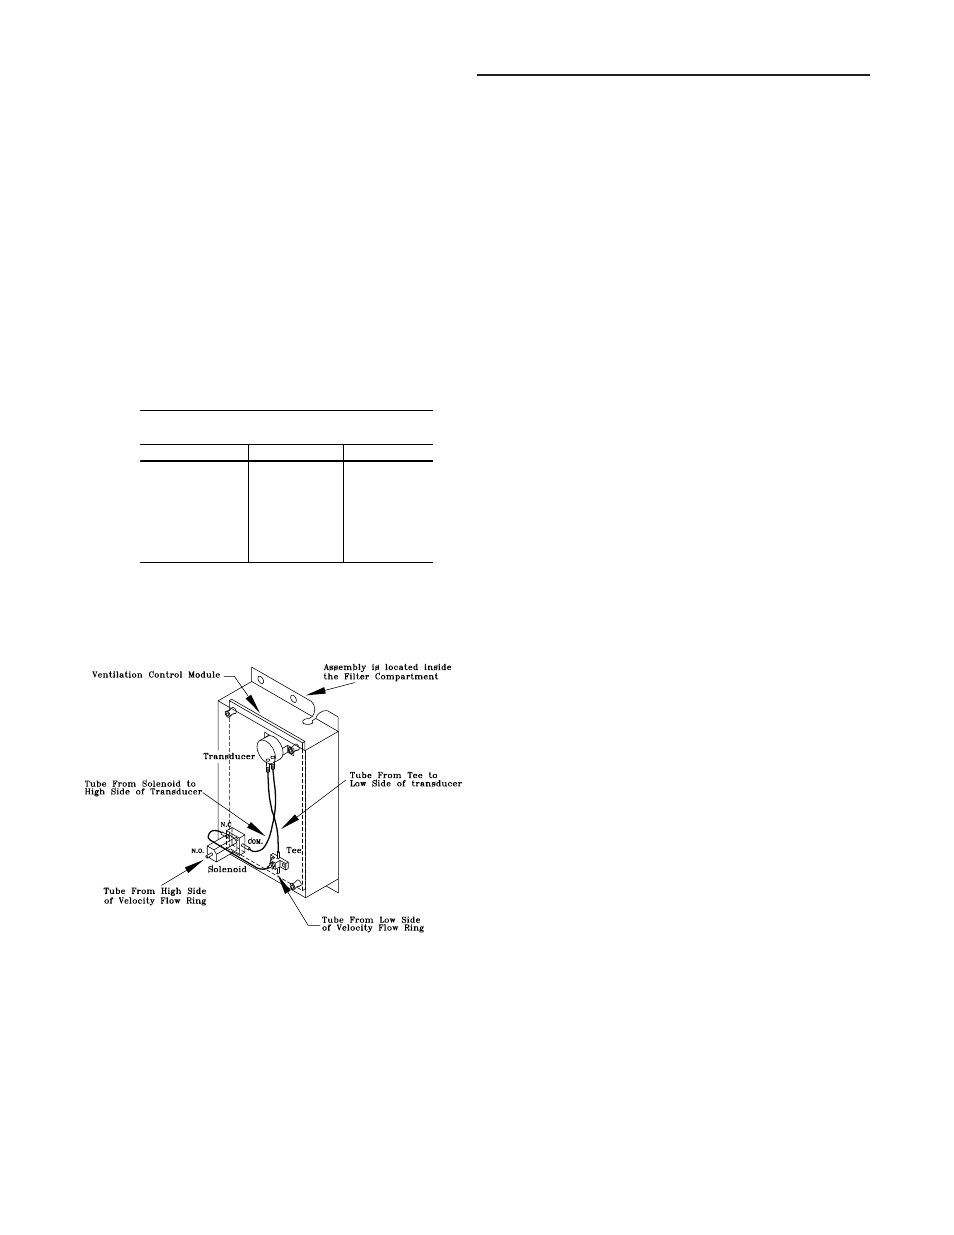 trane intellipak commercial single zone rooftop air conditioners with cv or vav control page8?resize\=665%2C861 trane intellipak rtu wiring diagram gandul 45 77 79 119 Trane HVAC Wiring Diagrams at edmiracle.co